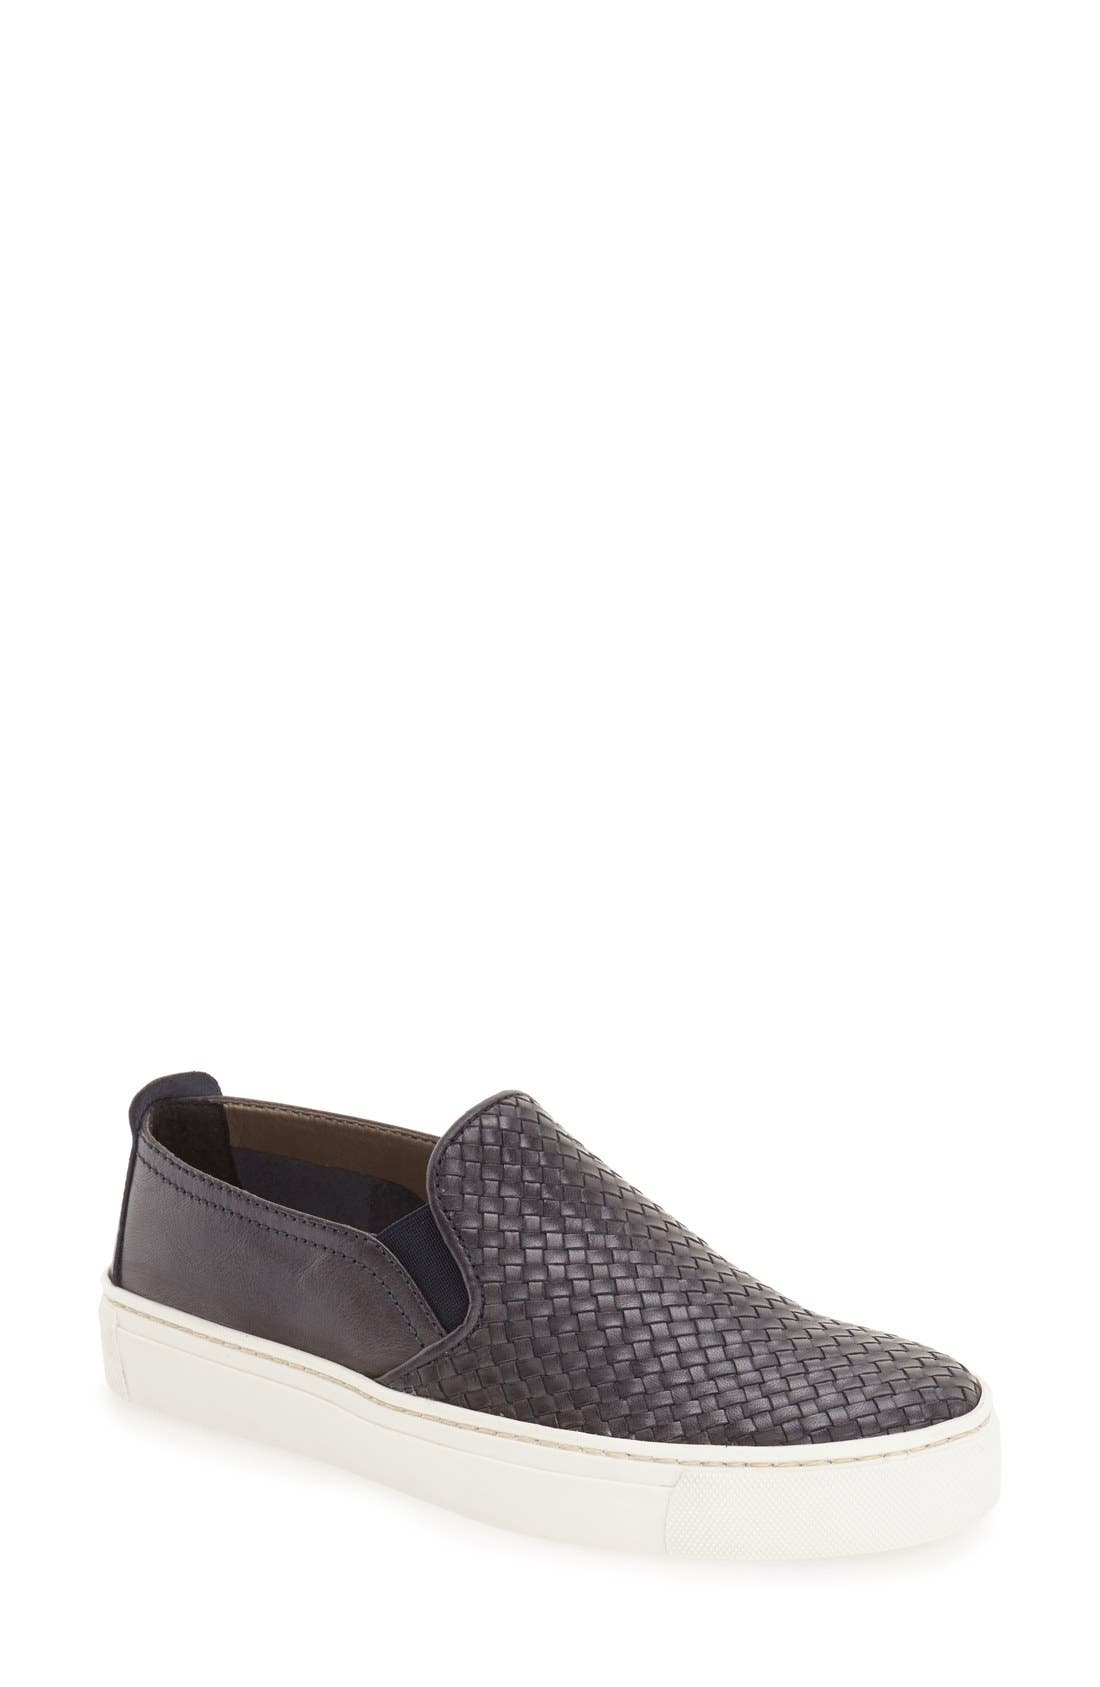 What store carries Studio Works shoes?